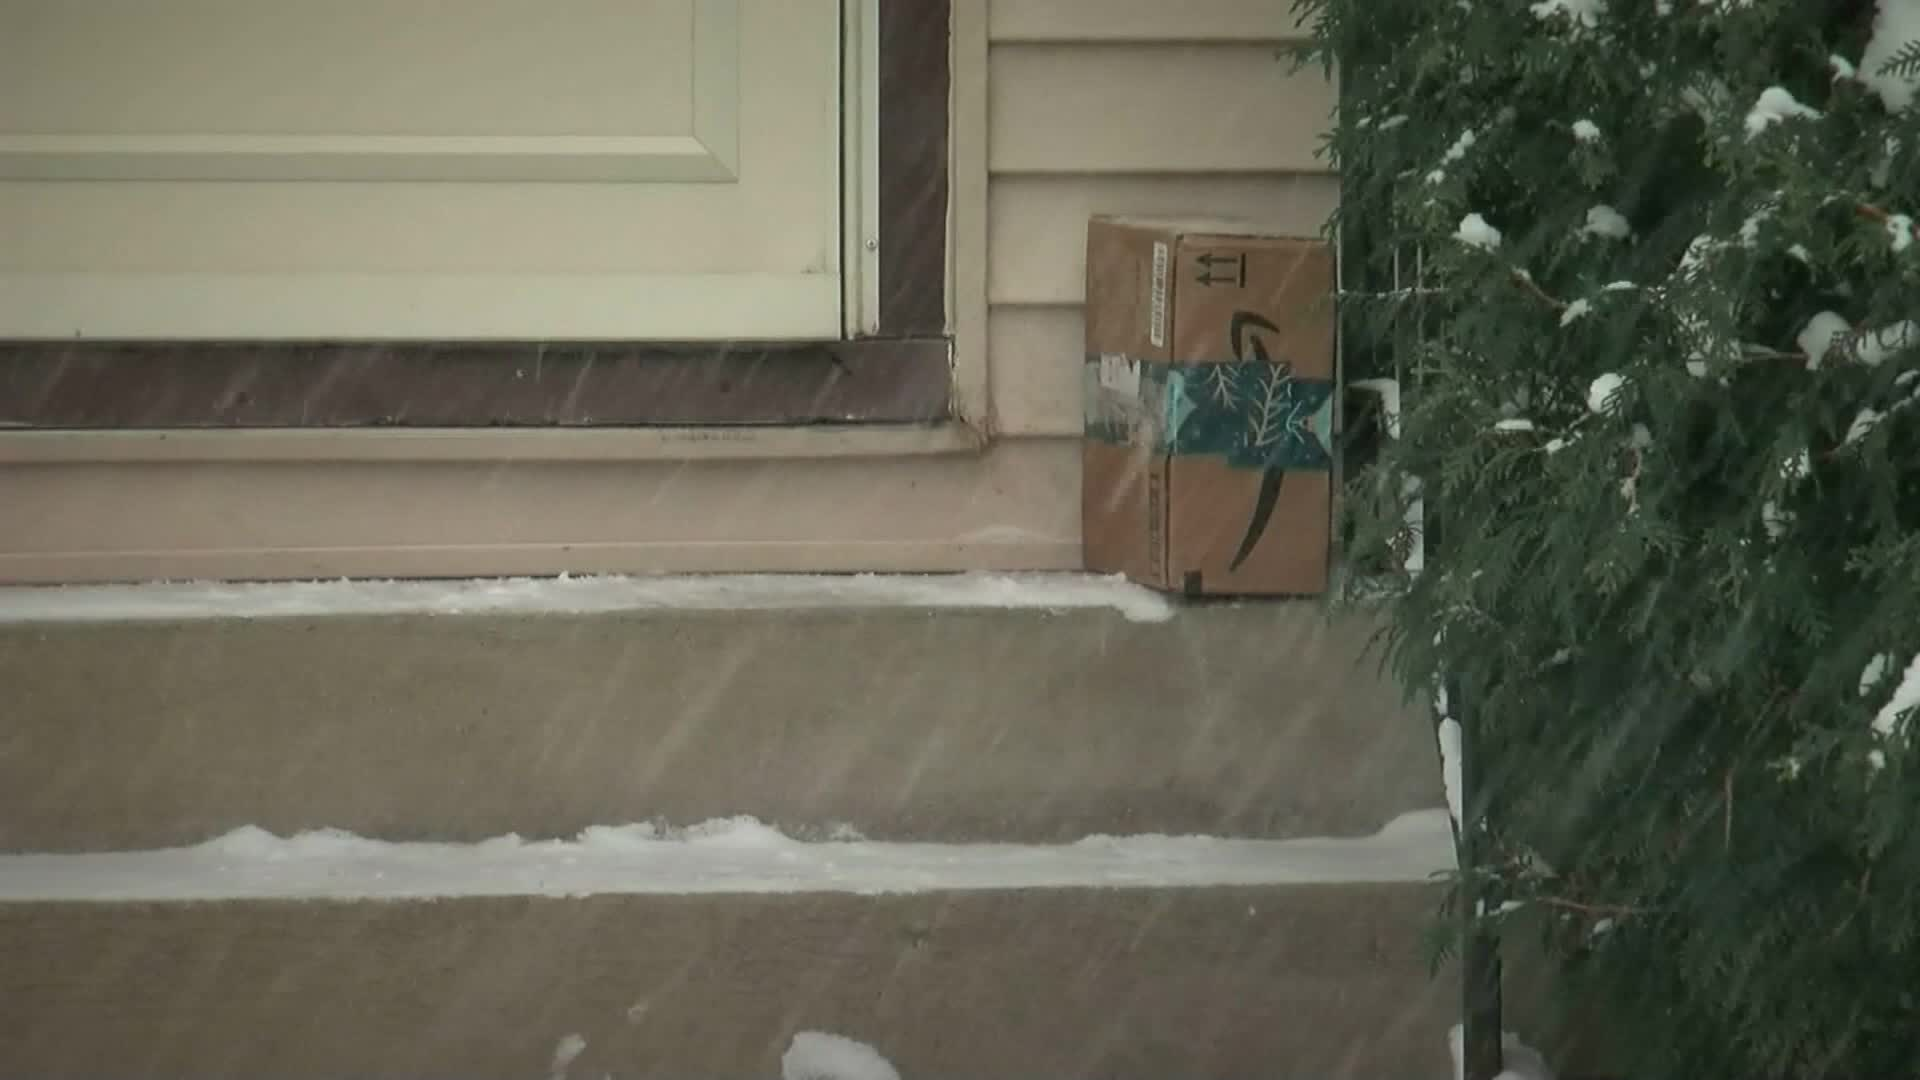 A porch pirate stole a package from a home, then threw shade with a snarky thank-you note